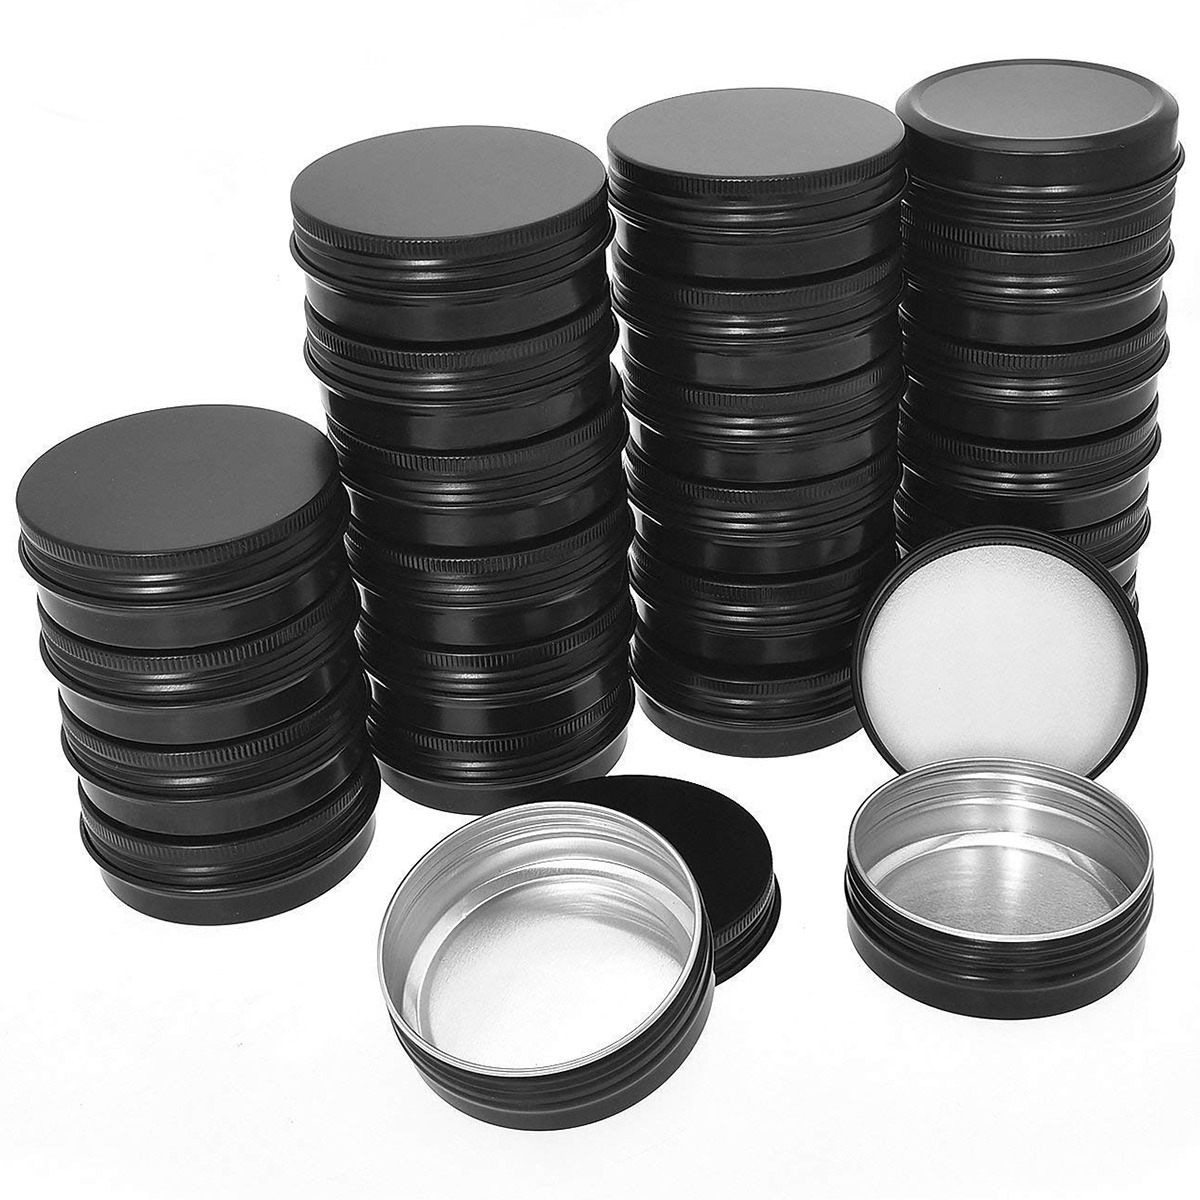 CHFL Aluminum Tin Cans - 40 Pack 1Oz / 30G Round Metal Tin Container Screw Top Cans Cosmetic Sample Containers Candle Travel T